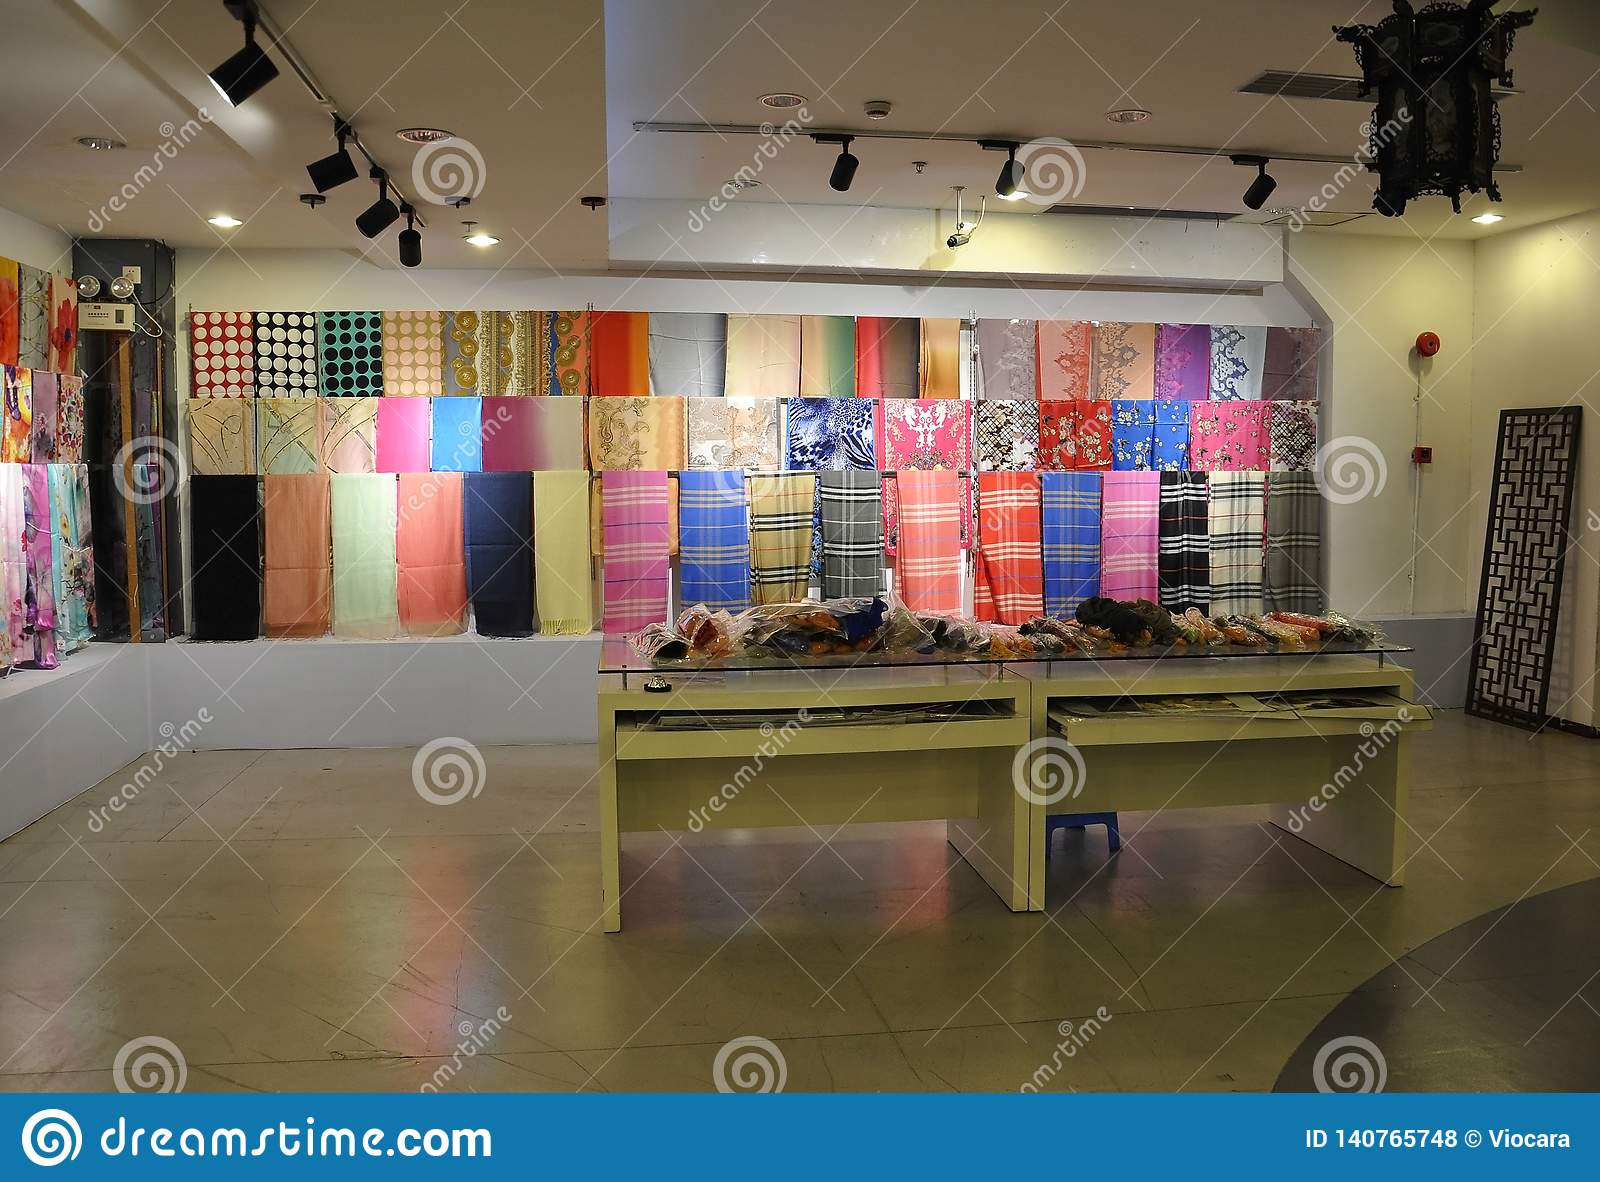 Showroom Design Shanghai.Shanghai 2nd May Silk Factory Showroom Interior From